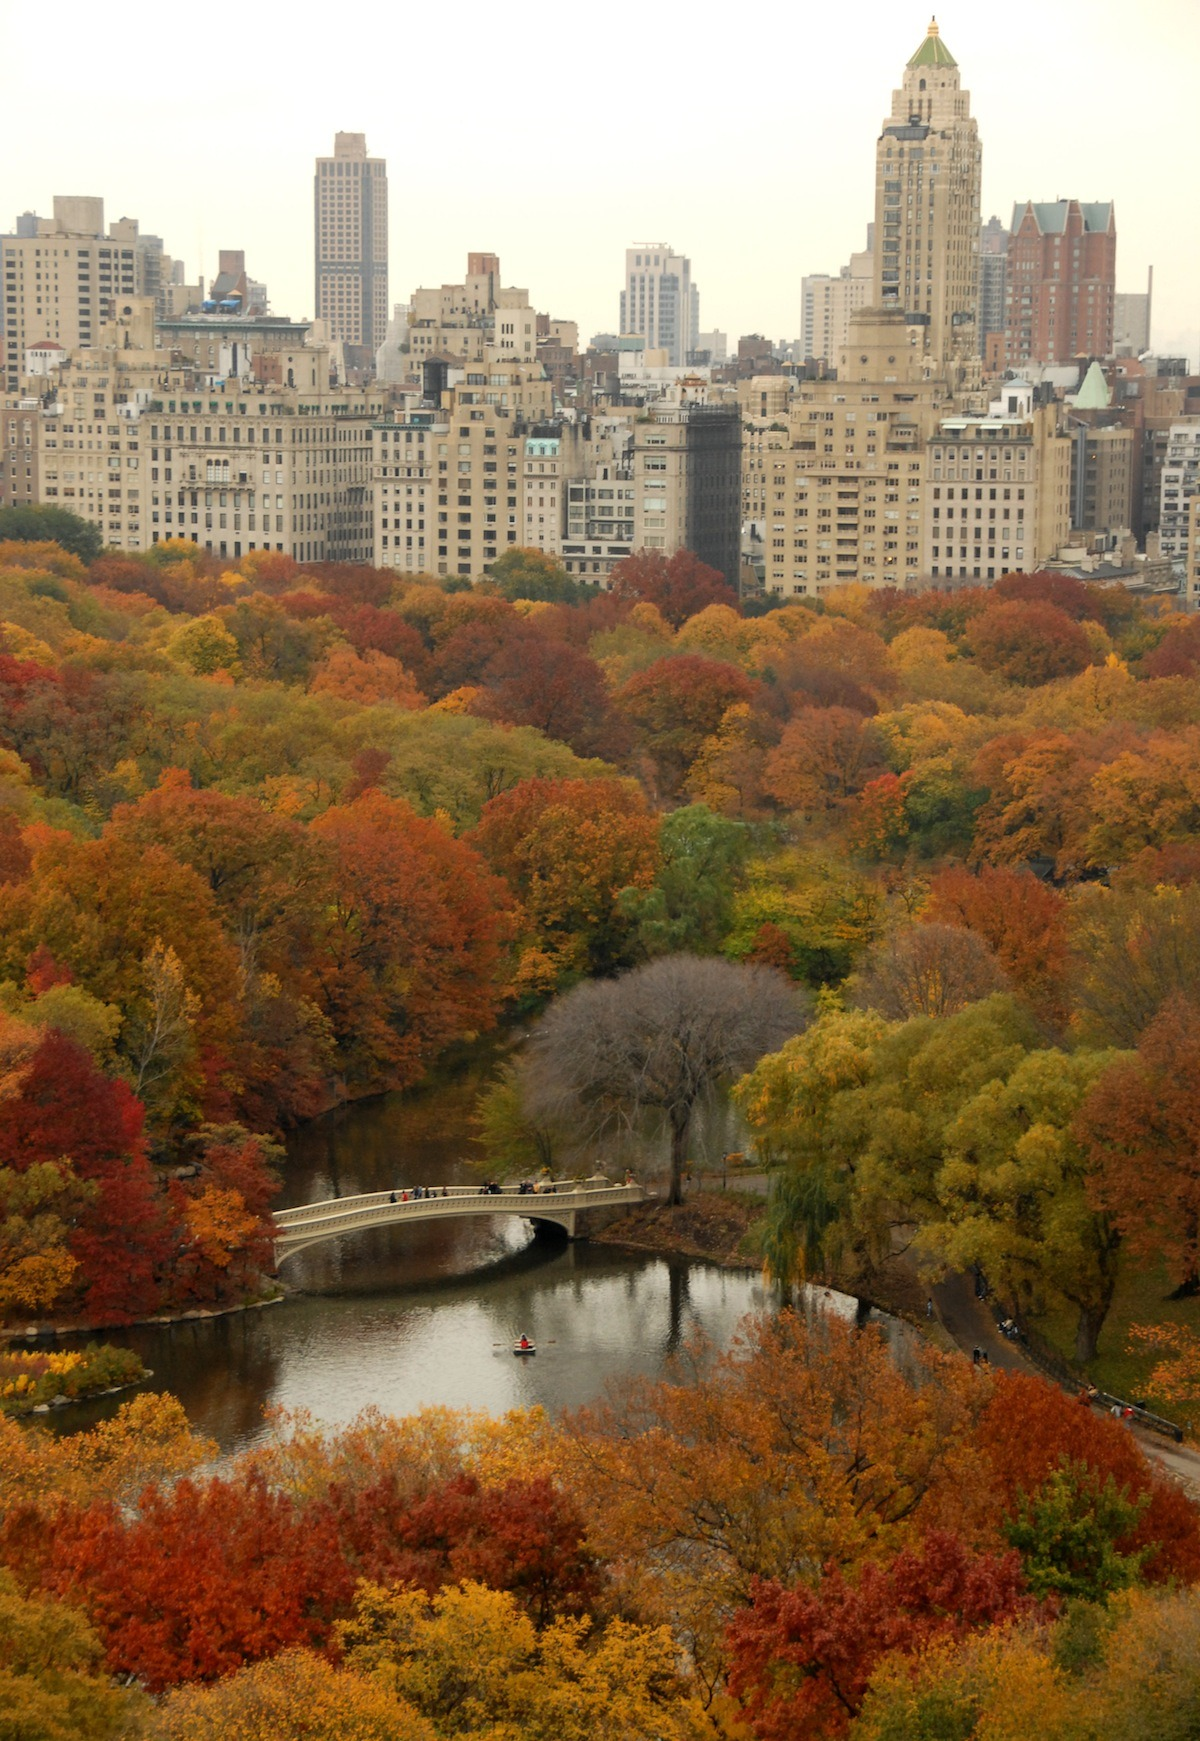 The Big Task of Managing Nature at New York's Central Park This one's important because it tackles not only the rules of the road for the care of Central Park, but so many natural environments around New York and elsewhere. It's no easy task keeping these landscapes safe, clean, and healthy. And that includes the NYBG's 50-acre Forest. President Charles A. Birnbaum of the Cultural Landscape Foundation, with input from our very own VP of Horticulture, Todd Forrest, does a wonderful job of explaining how the ride-on mower guy you see taking care of the Great Lawn is only the tip of an enormous iceberg. You'll also want to take a look at the links near the bottom of the piece, where Charles discusses the much-anticipated Central Park Woodlands conference coming October 5; it's an opportunity to hear from heads of some of the nation's top urban forests. —MN